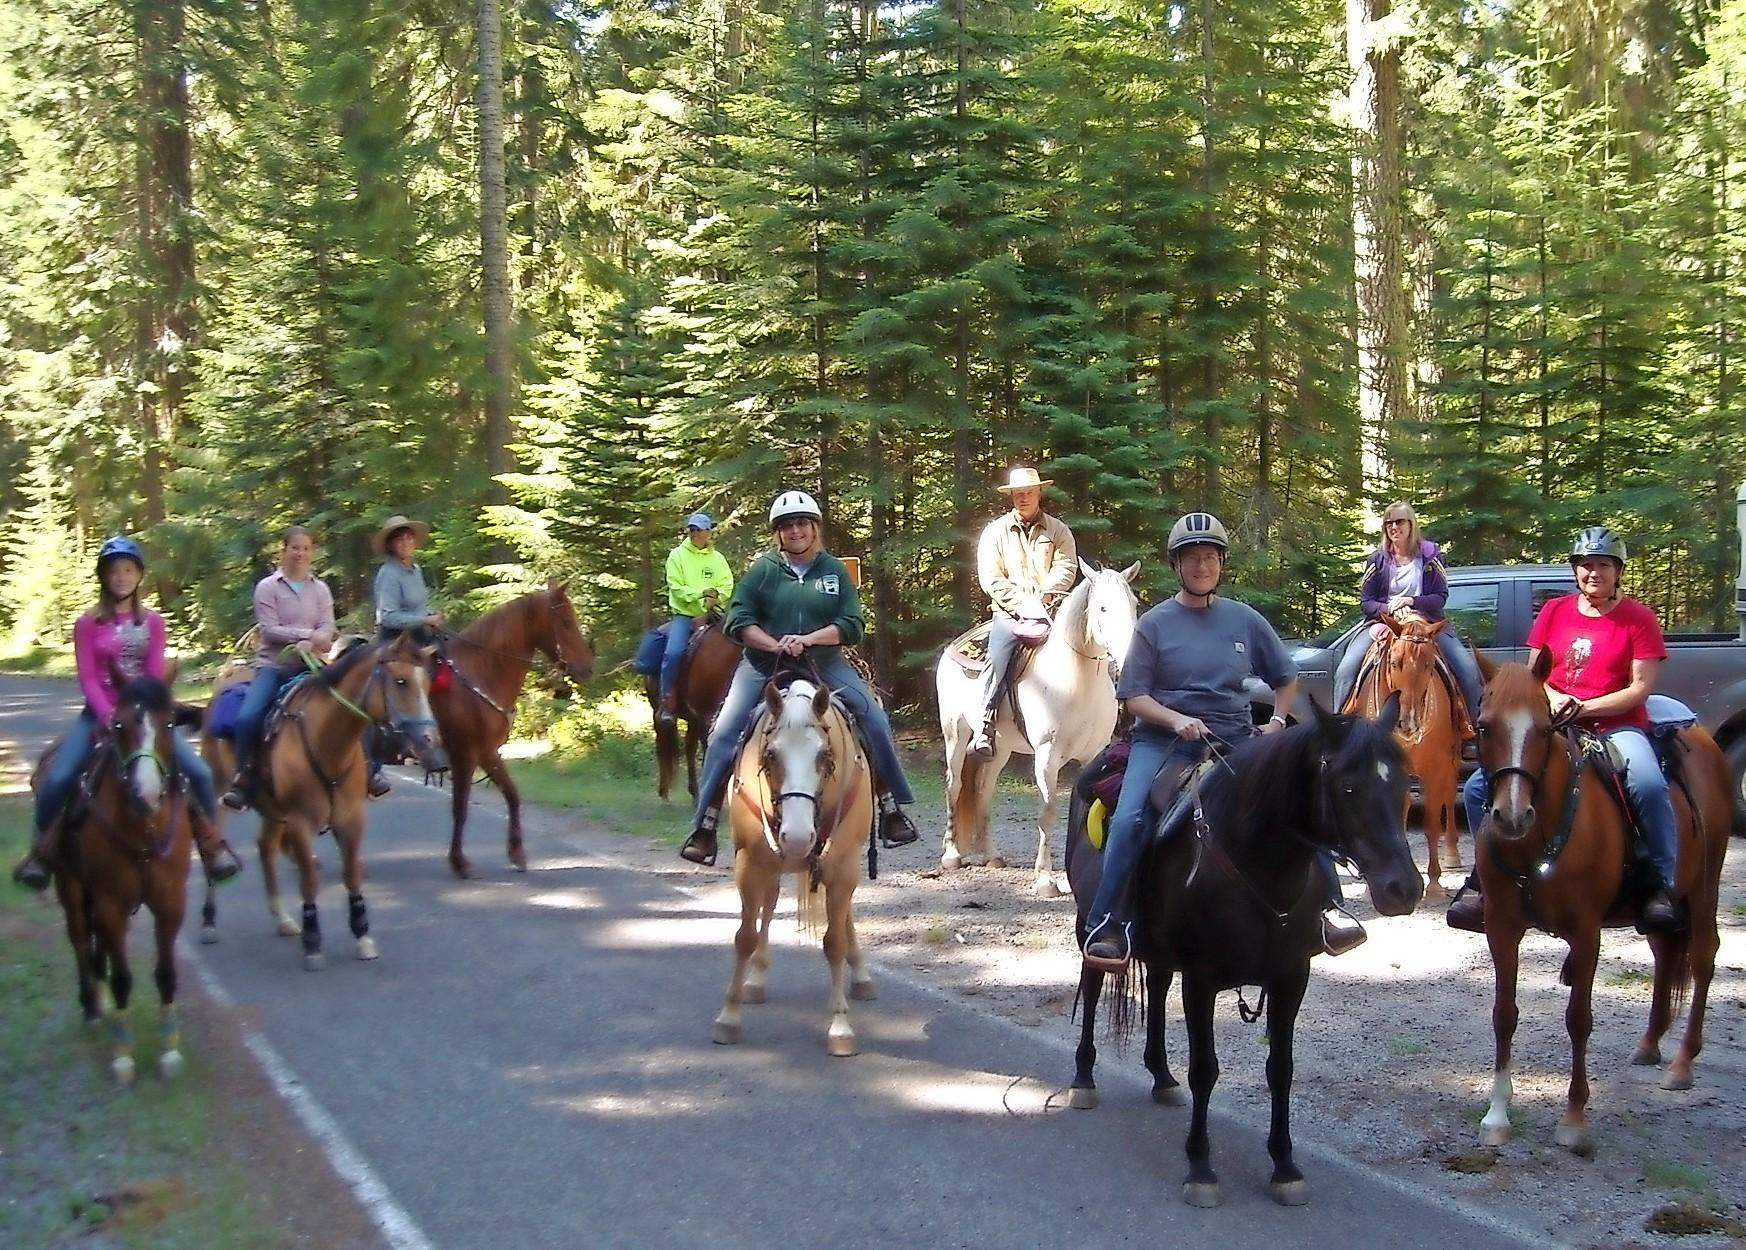 Club members gather for a trail ride on Brown Mountain. - Photo by Cindy Marotta